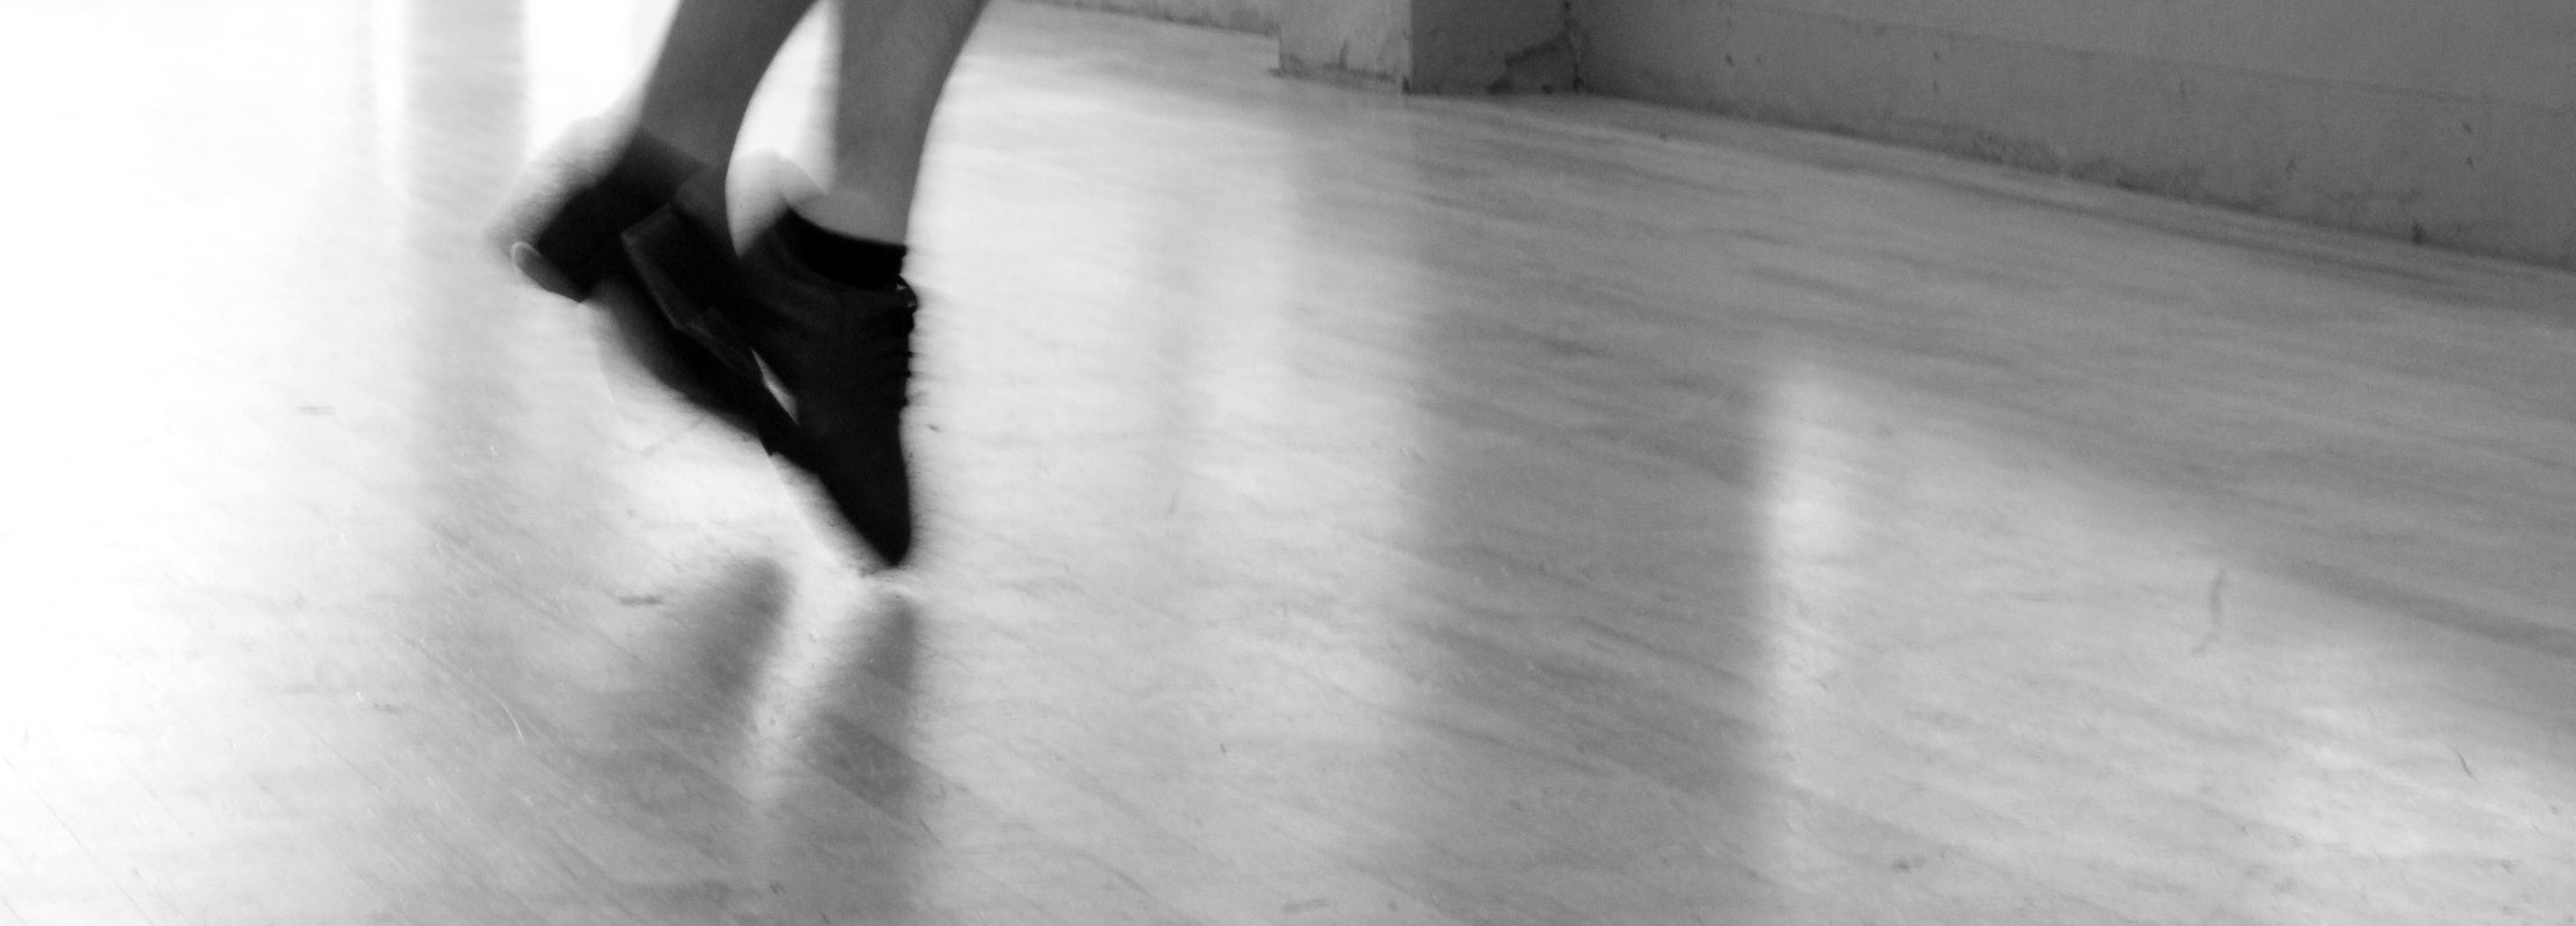 Tap Dance Classes In Denver